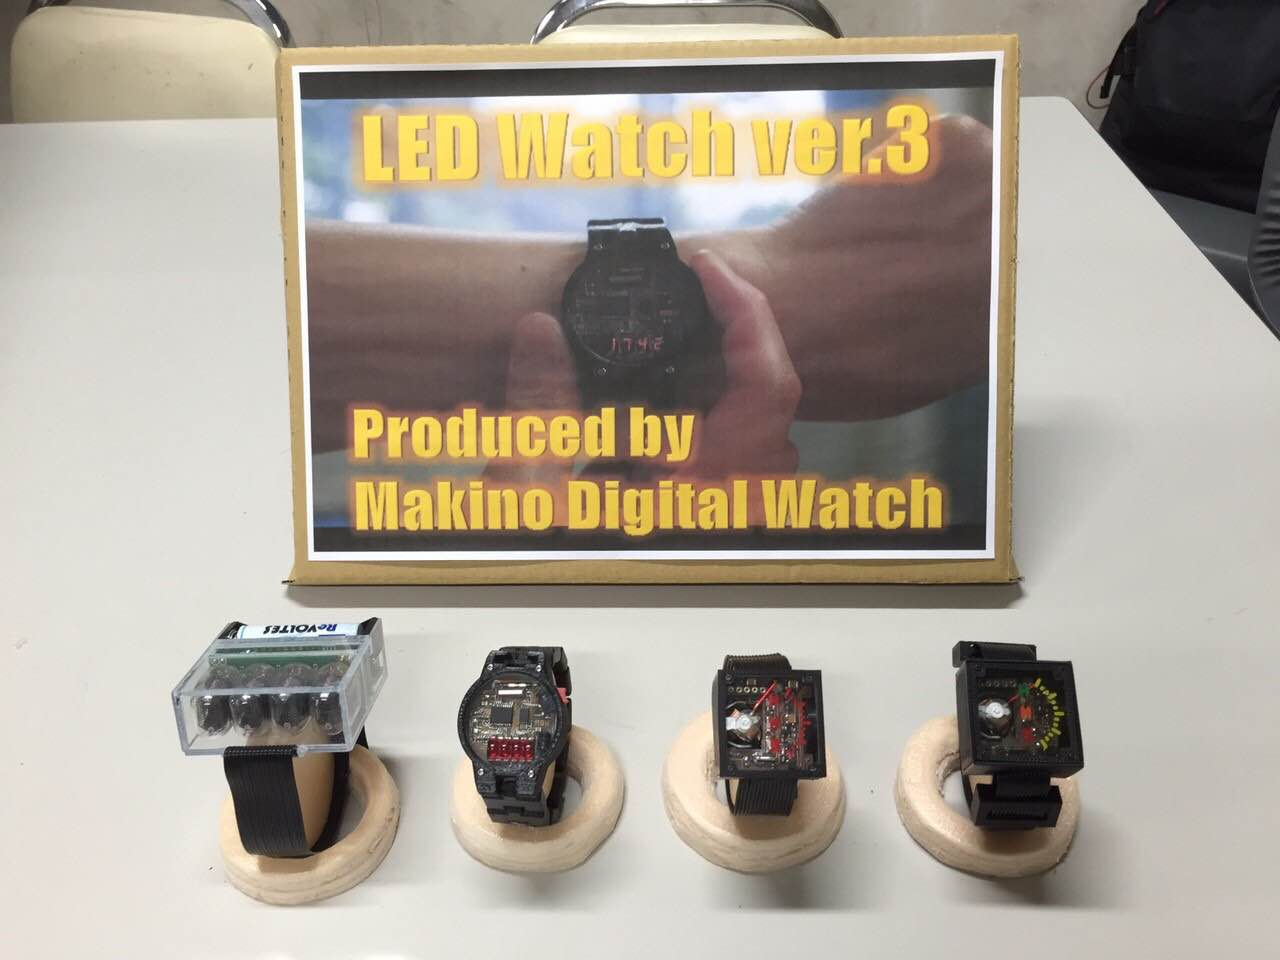 MakinoDigitalWatch